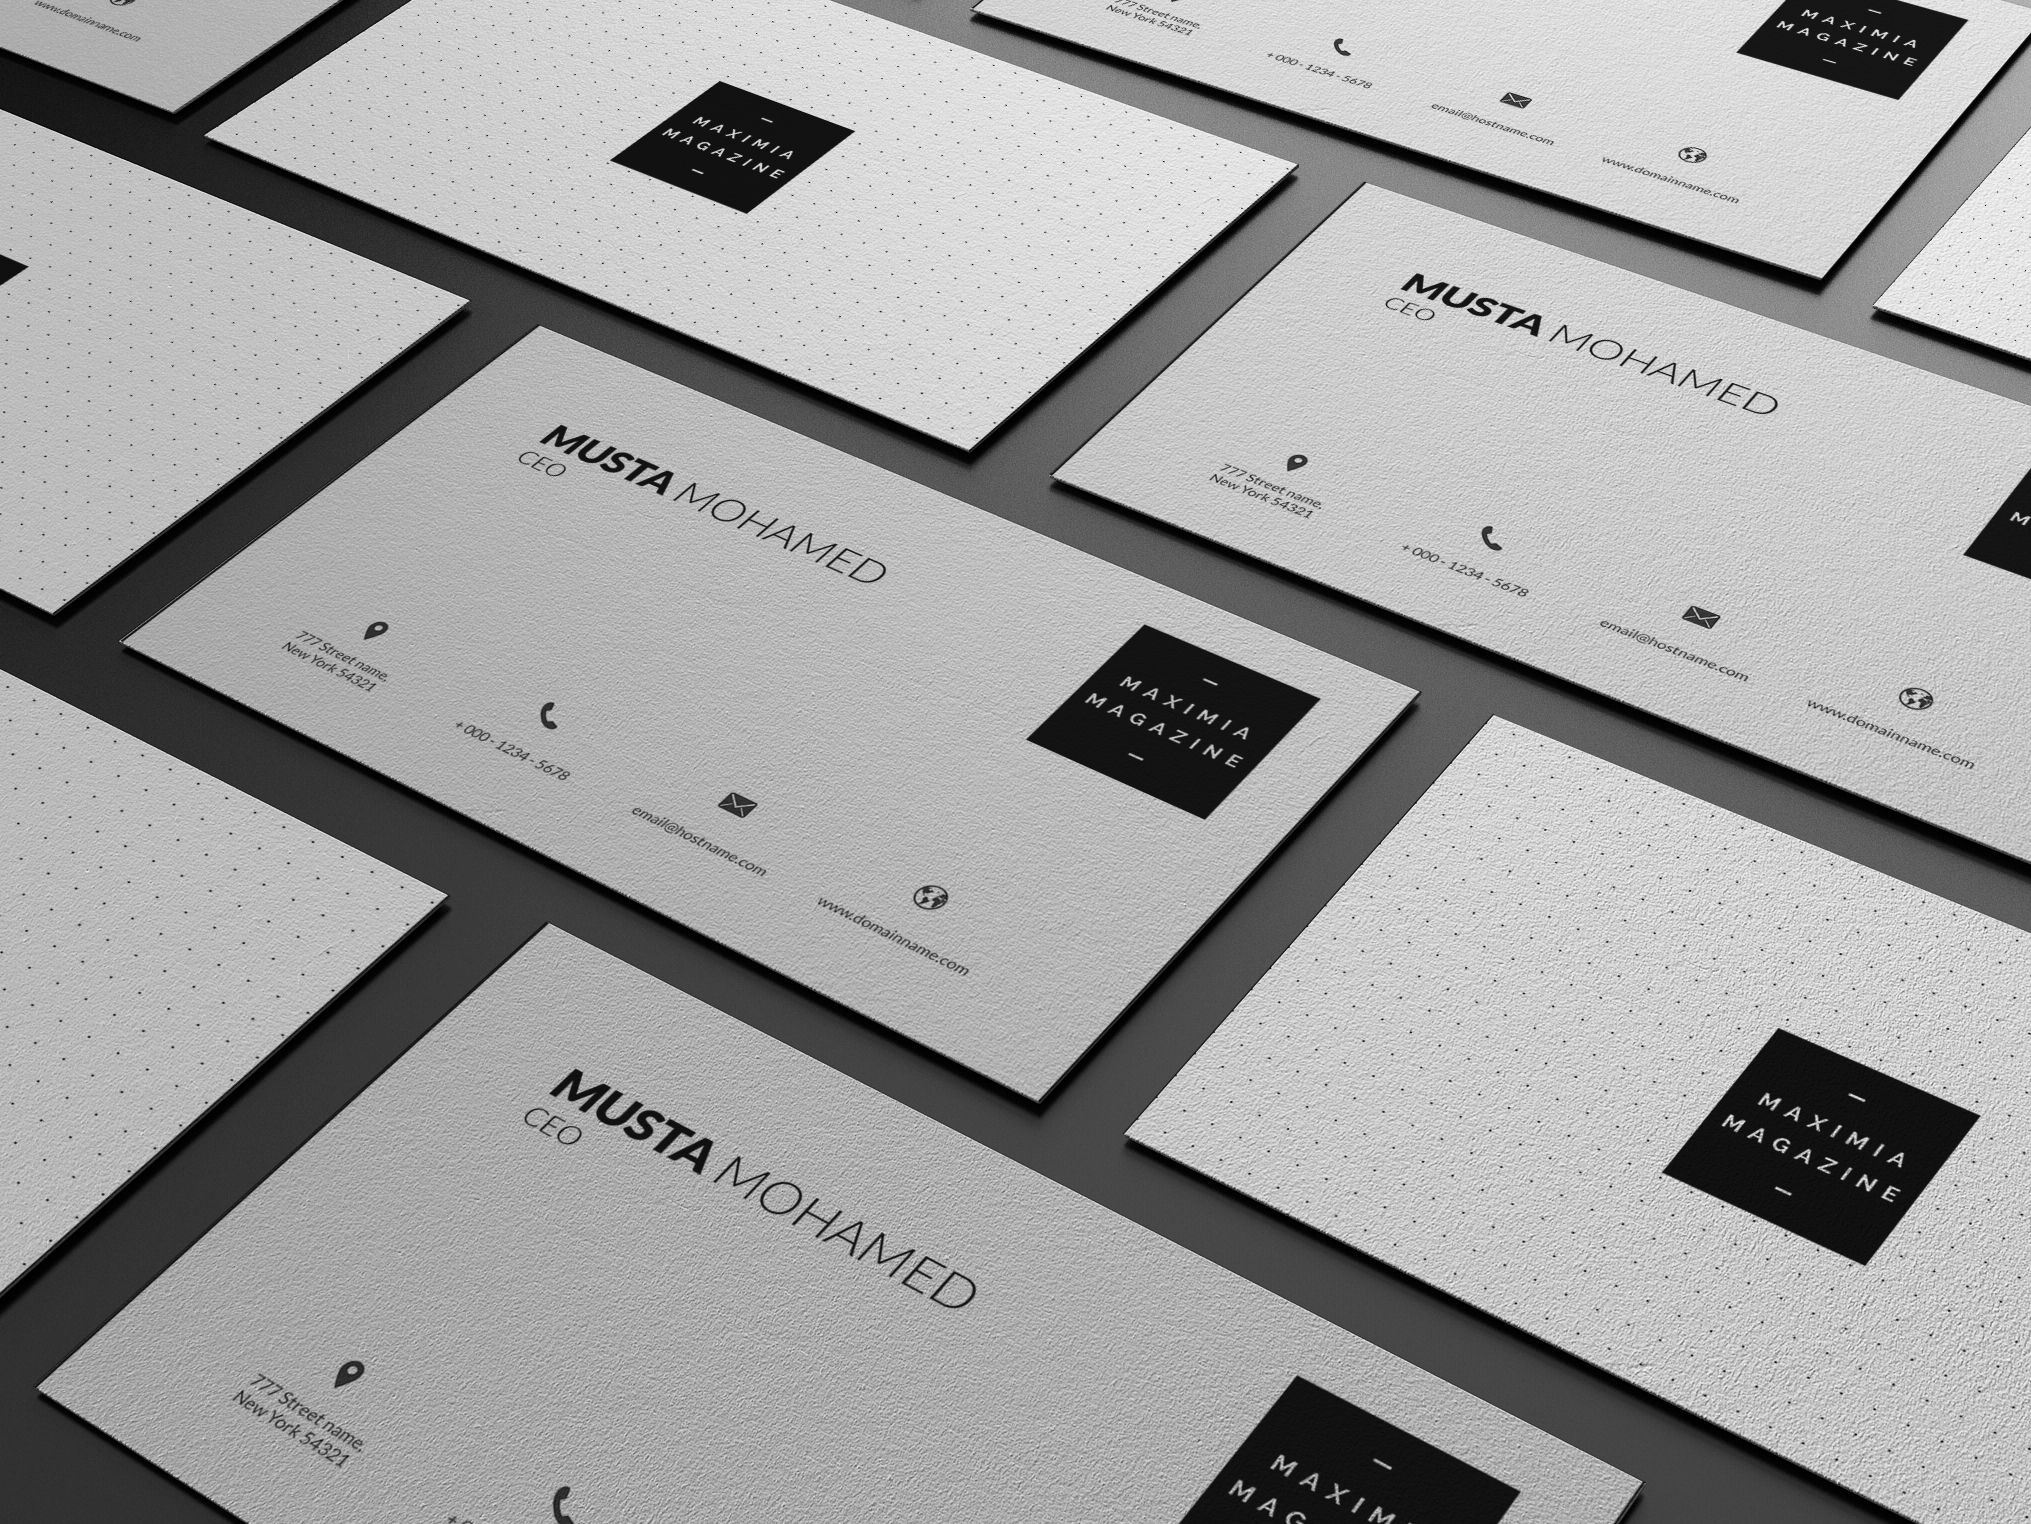 3 clean minimal business cards by mustaart on creativemarket